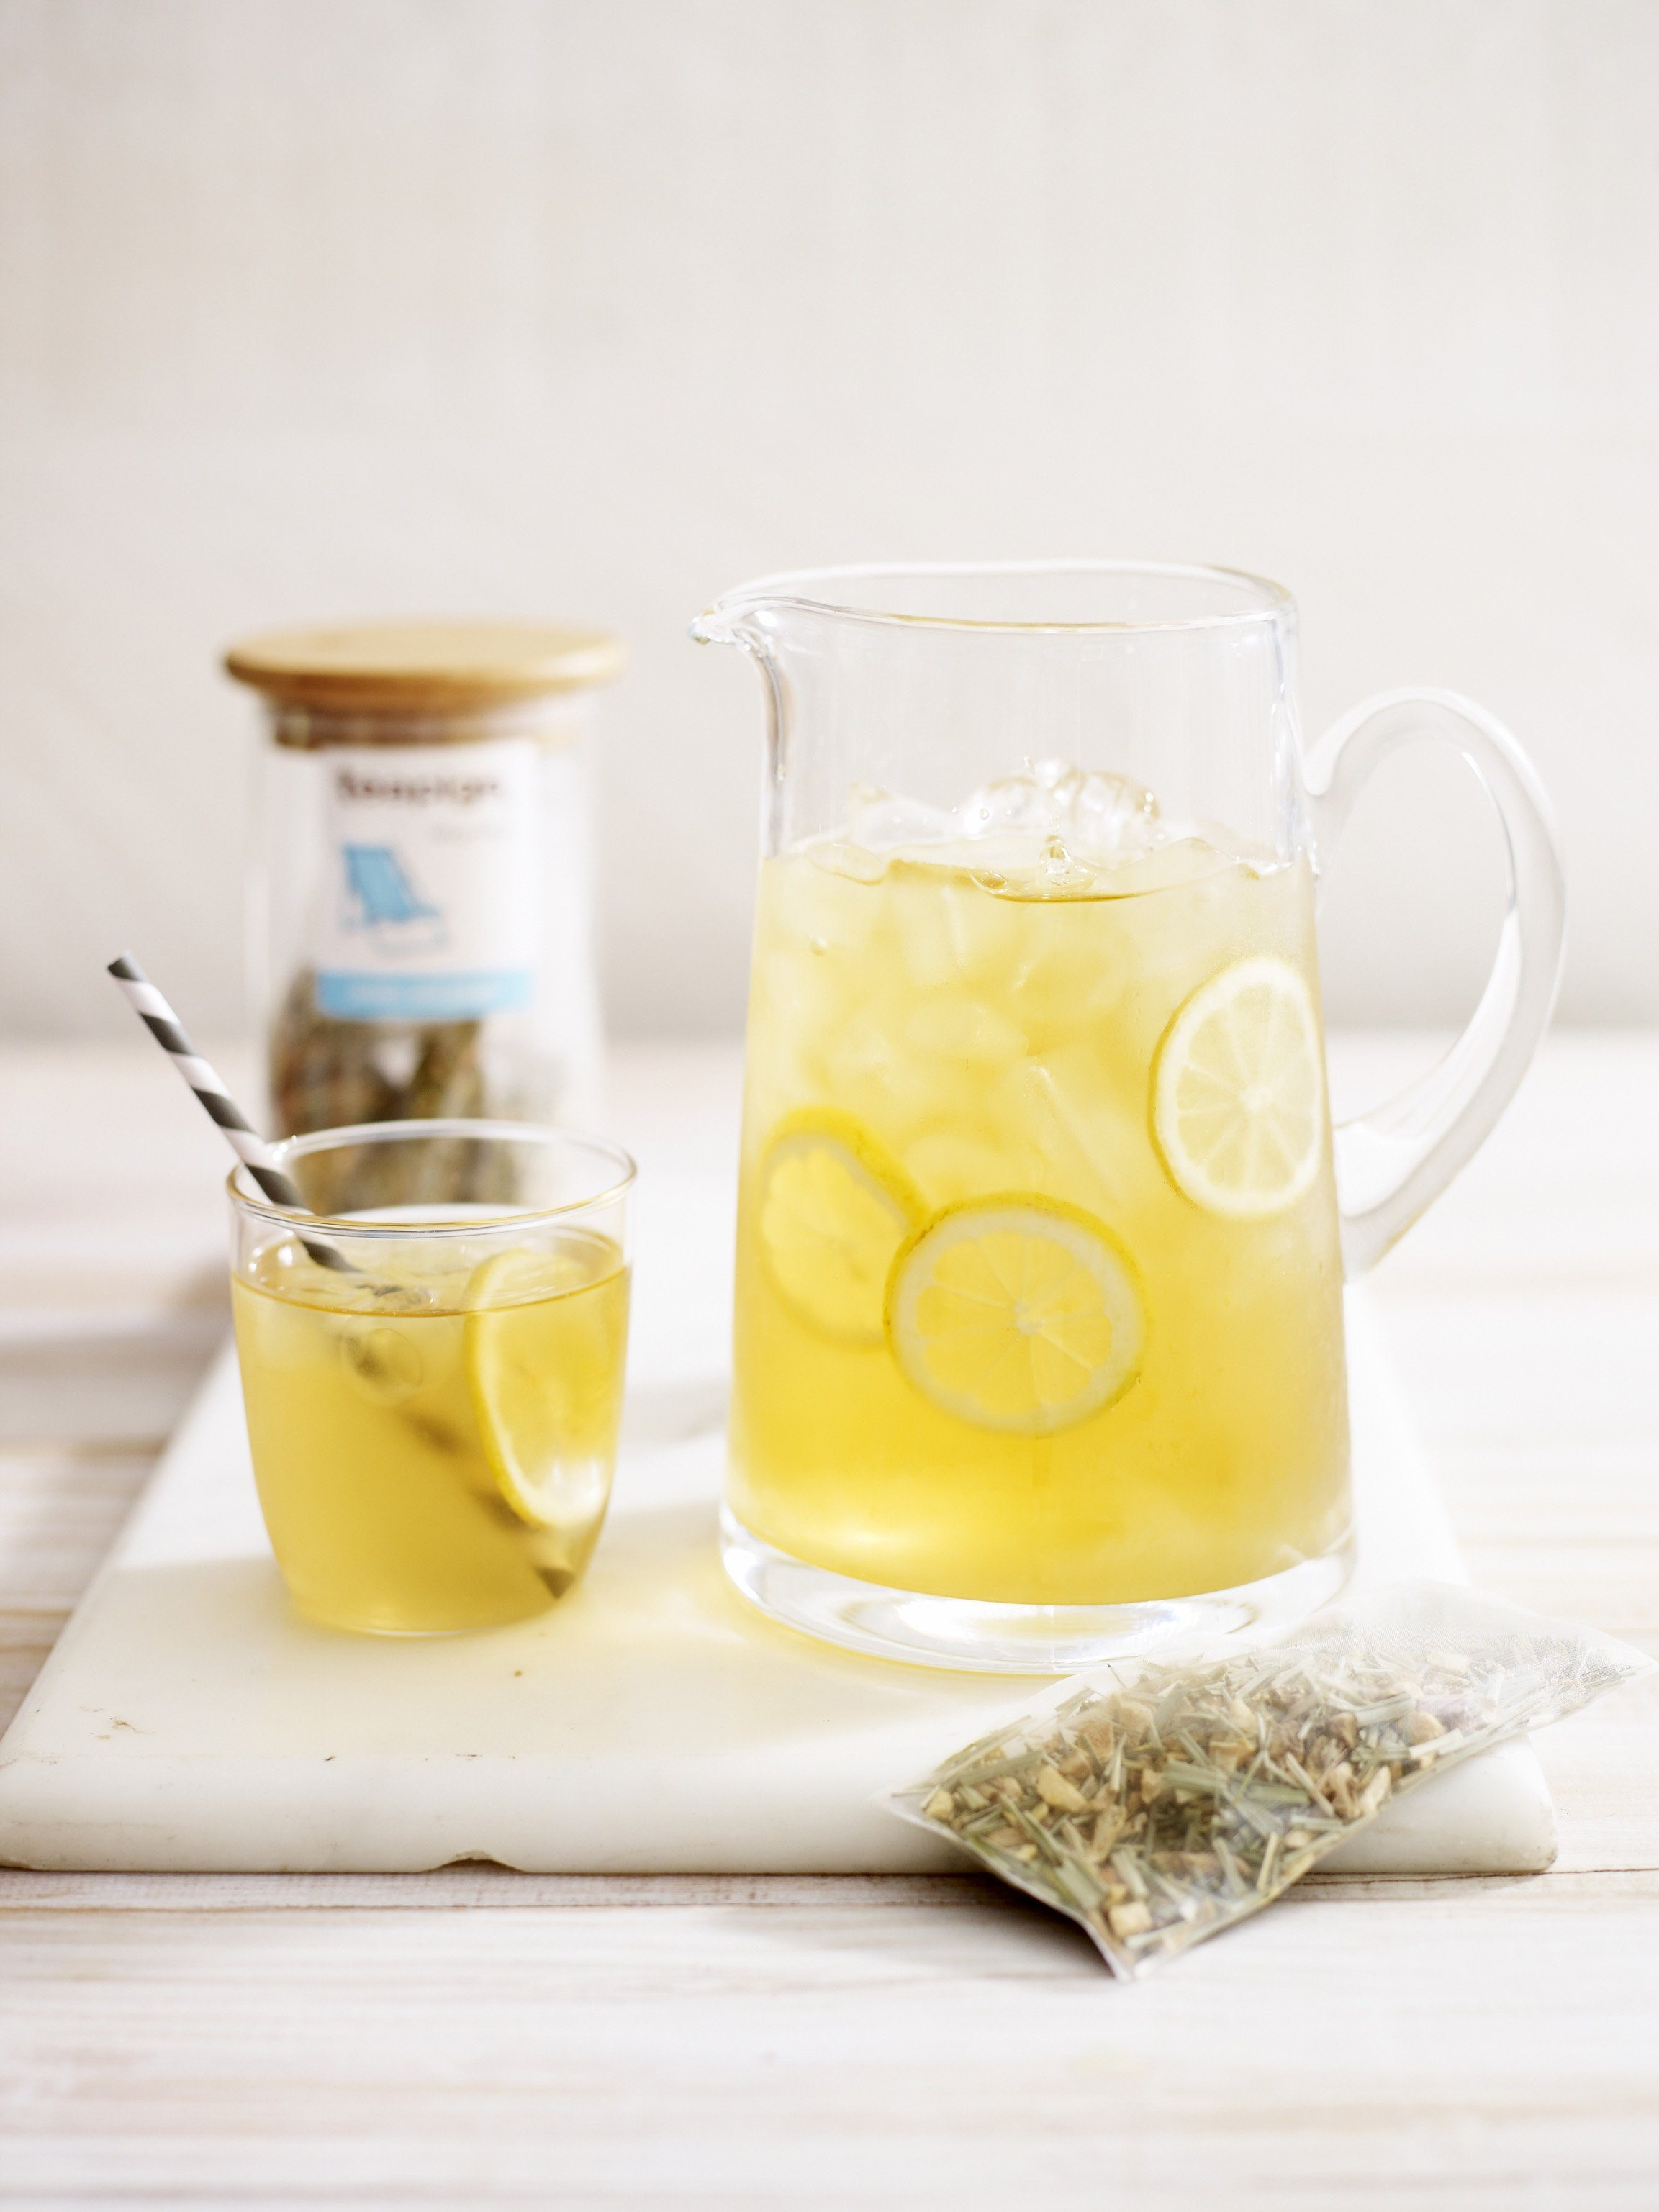 TeaPigs Lemon & Ginger Iced Tea